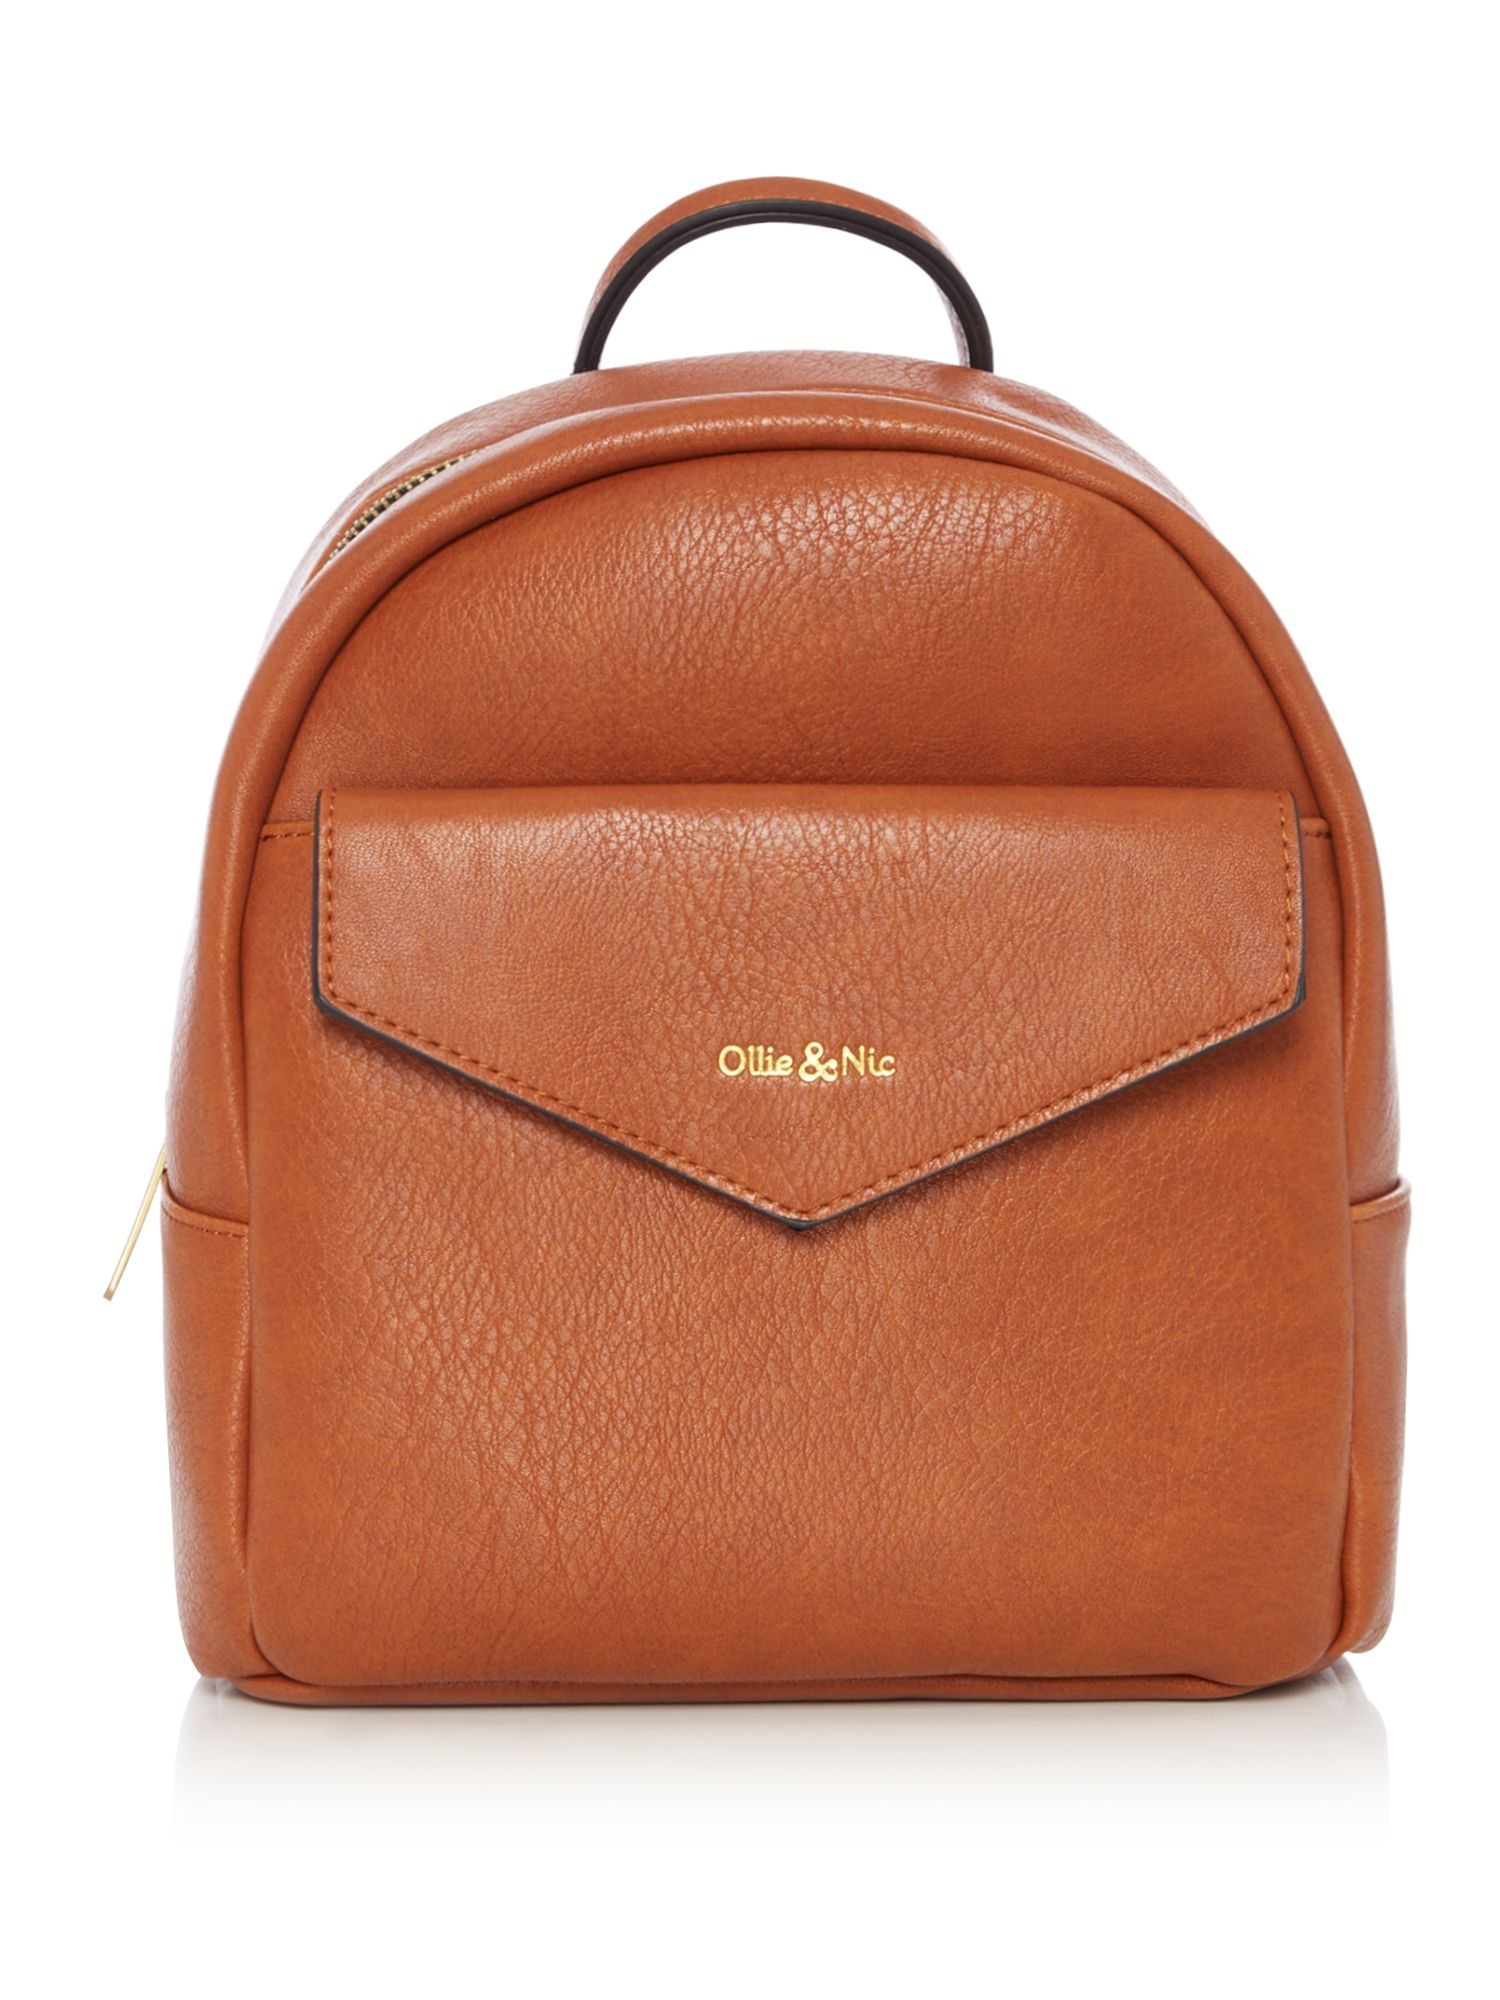 Ollie & Nic Eddy mini backpack, Tan